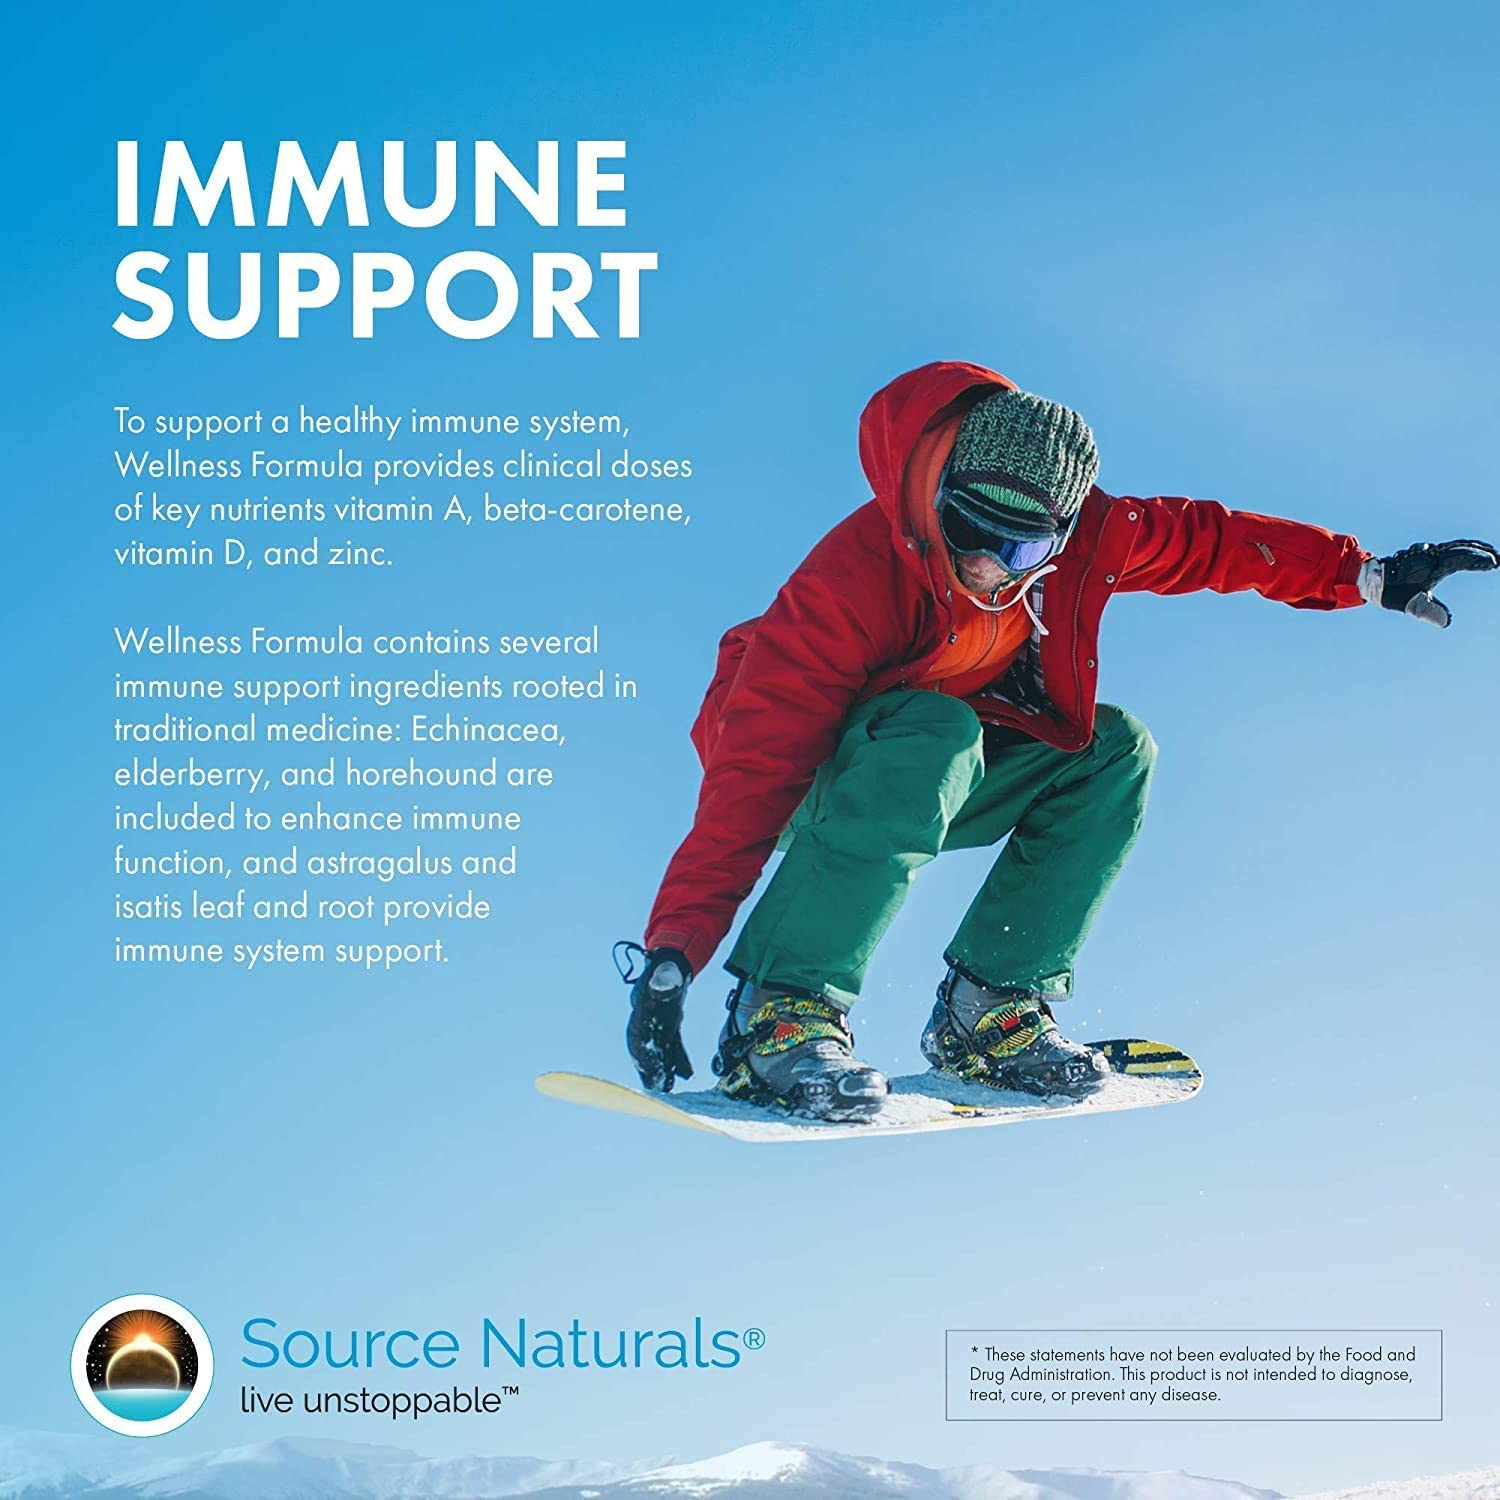 Source Naturals Wellness Formula Bio-Aligned Vitamins & Herbal Defense For Immune System Support - Dietary Supplement & Immunity Booster - 240 Capsules: Health & Personal Care